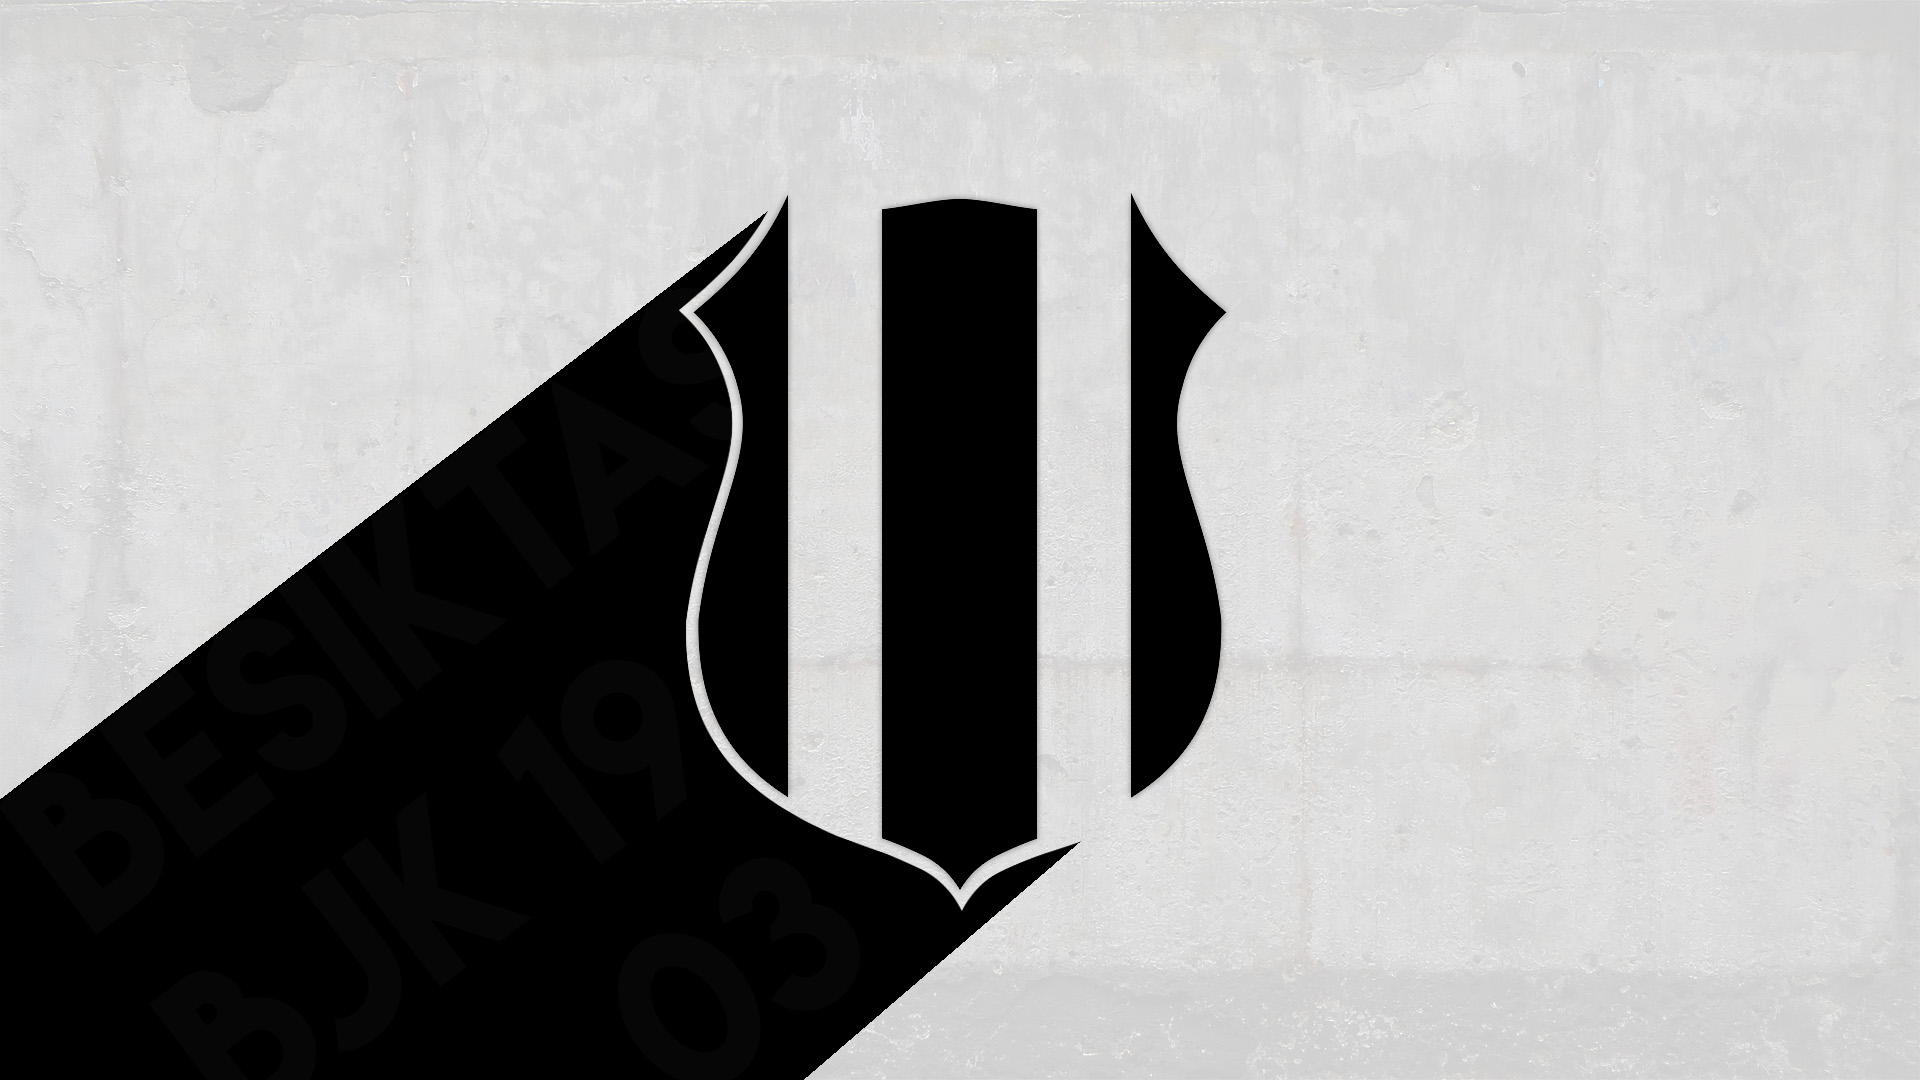 Besiktas jk minimalist wallpaper by gokalp10 on deviantart for Deviantart minimal wallpaper